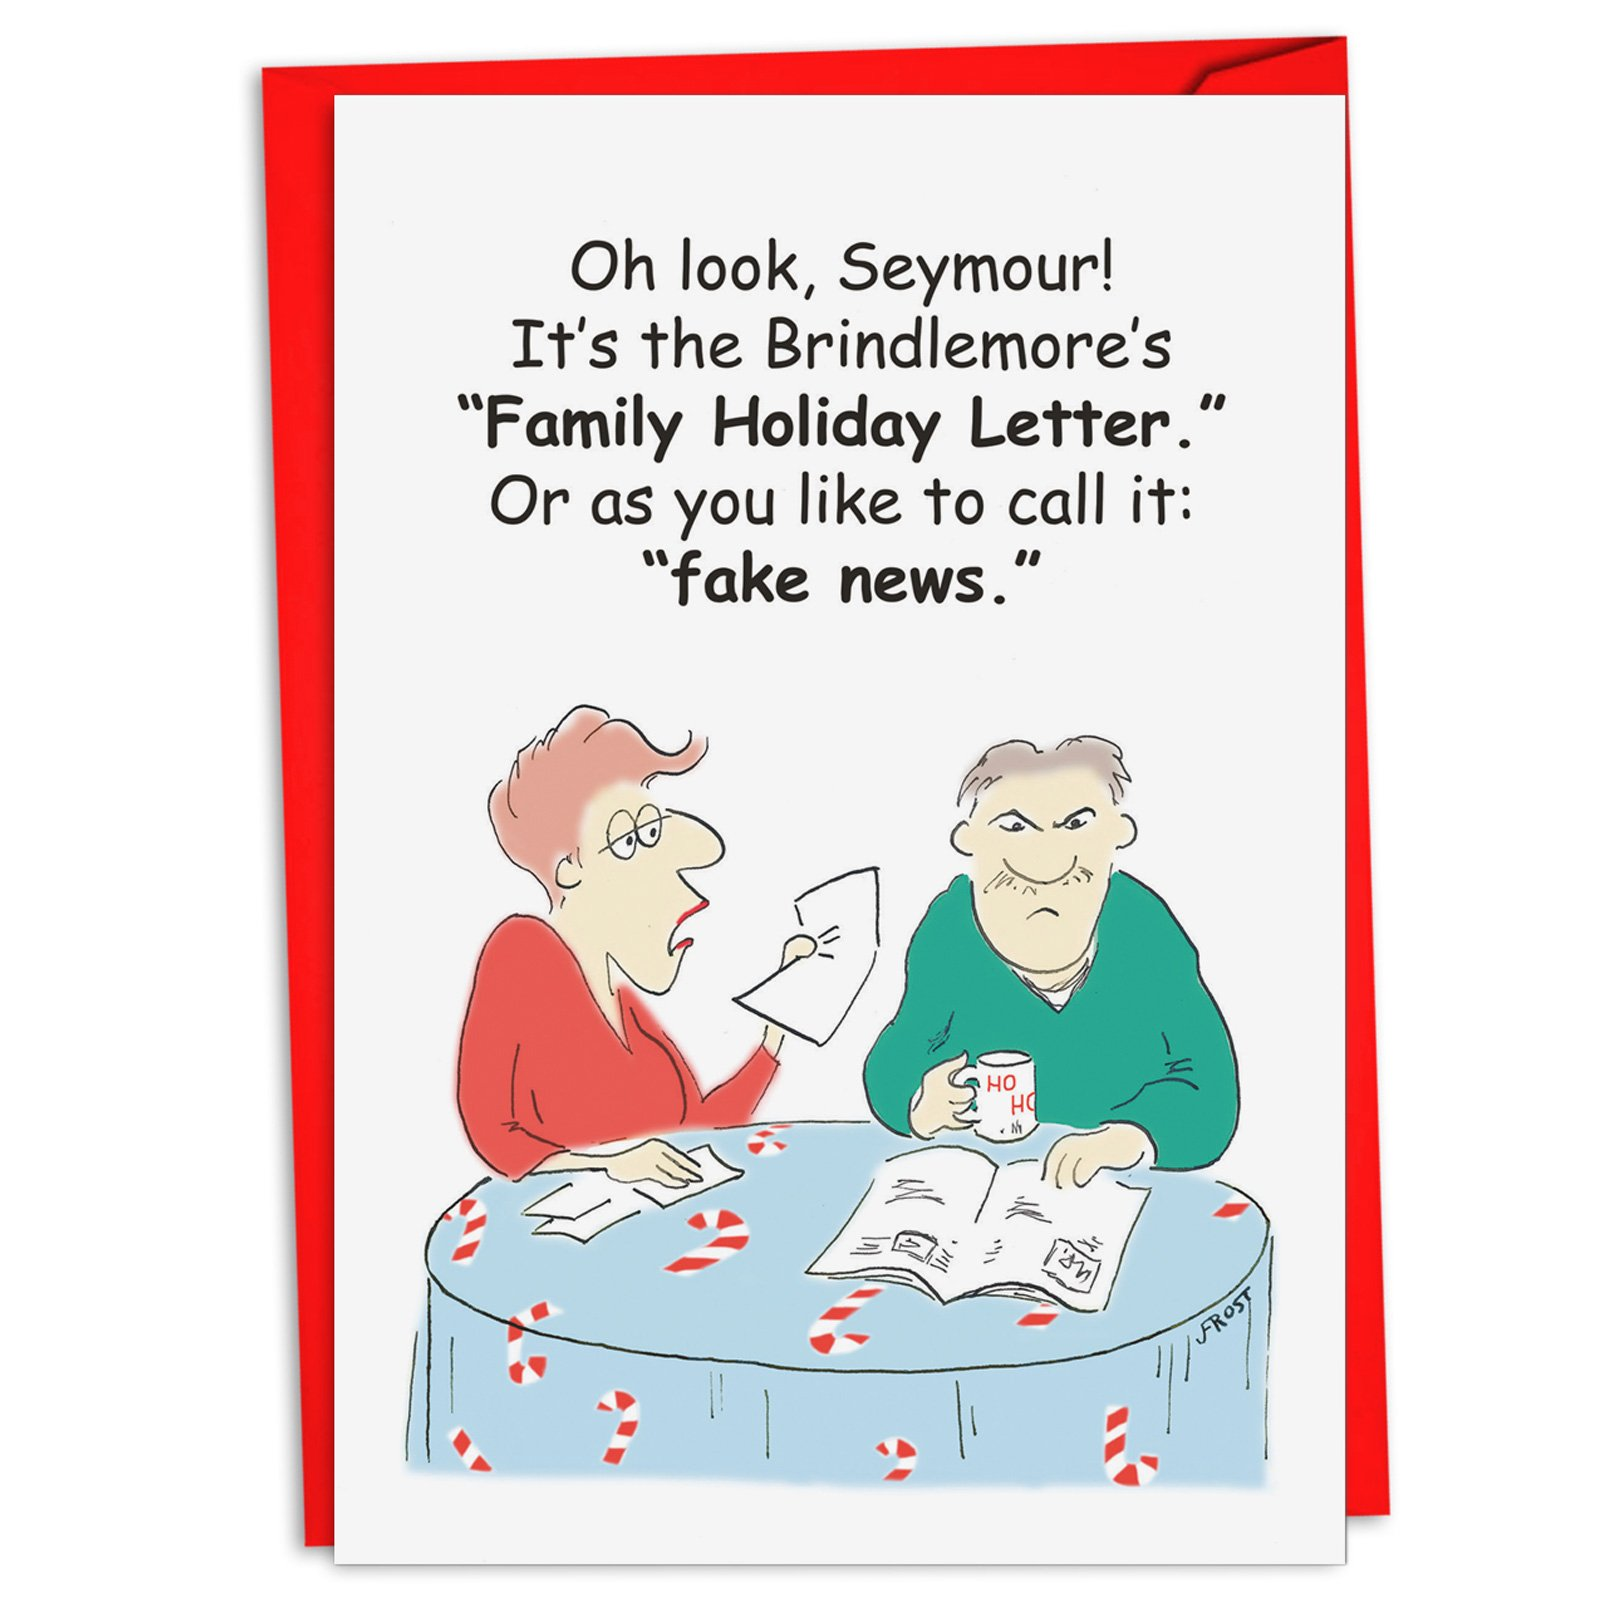 12 'Family Fake News' Hilarious Greeting Cards 4.63 x 6.75 inch, Merry Xmas Note Cards for Holidays, Gifts, Funny Family and Political Humor, Notecard Stationery w/Envelopes C4519XSG-B12